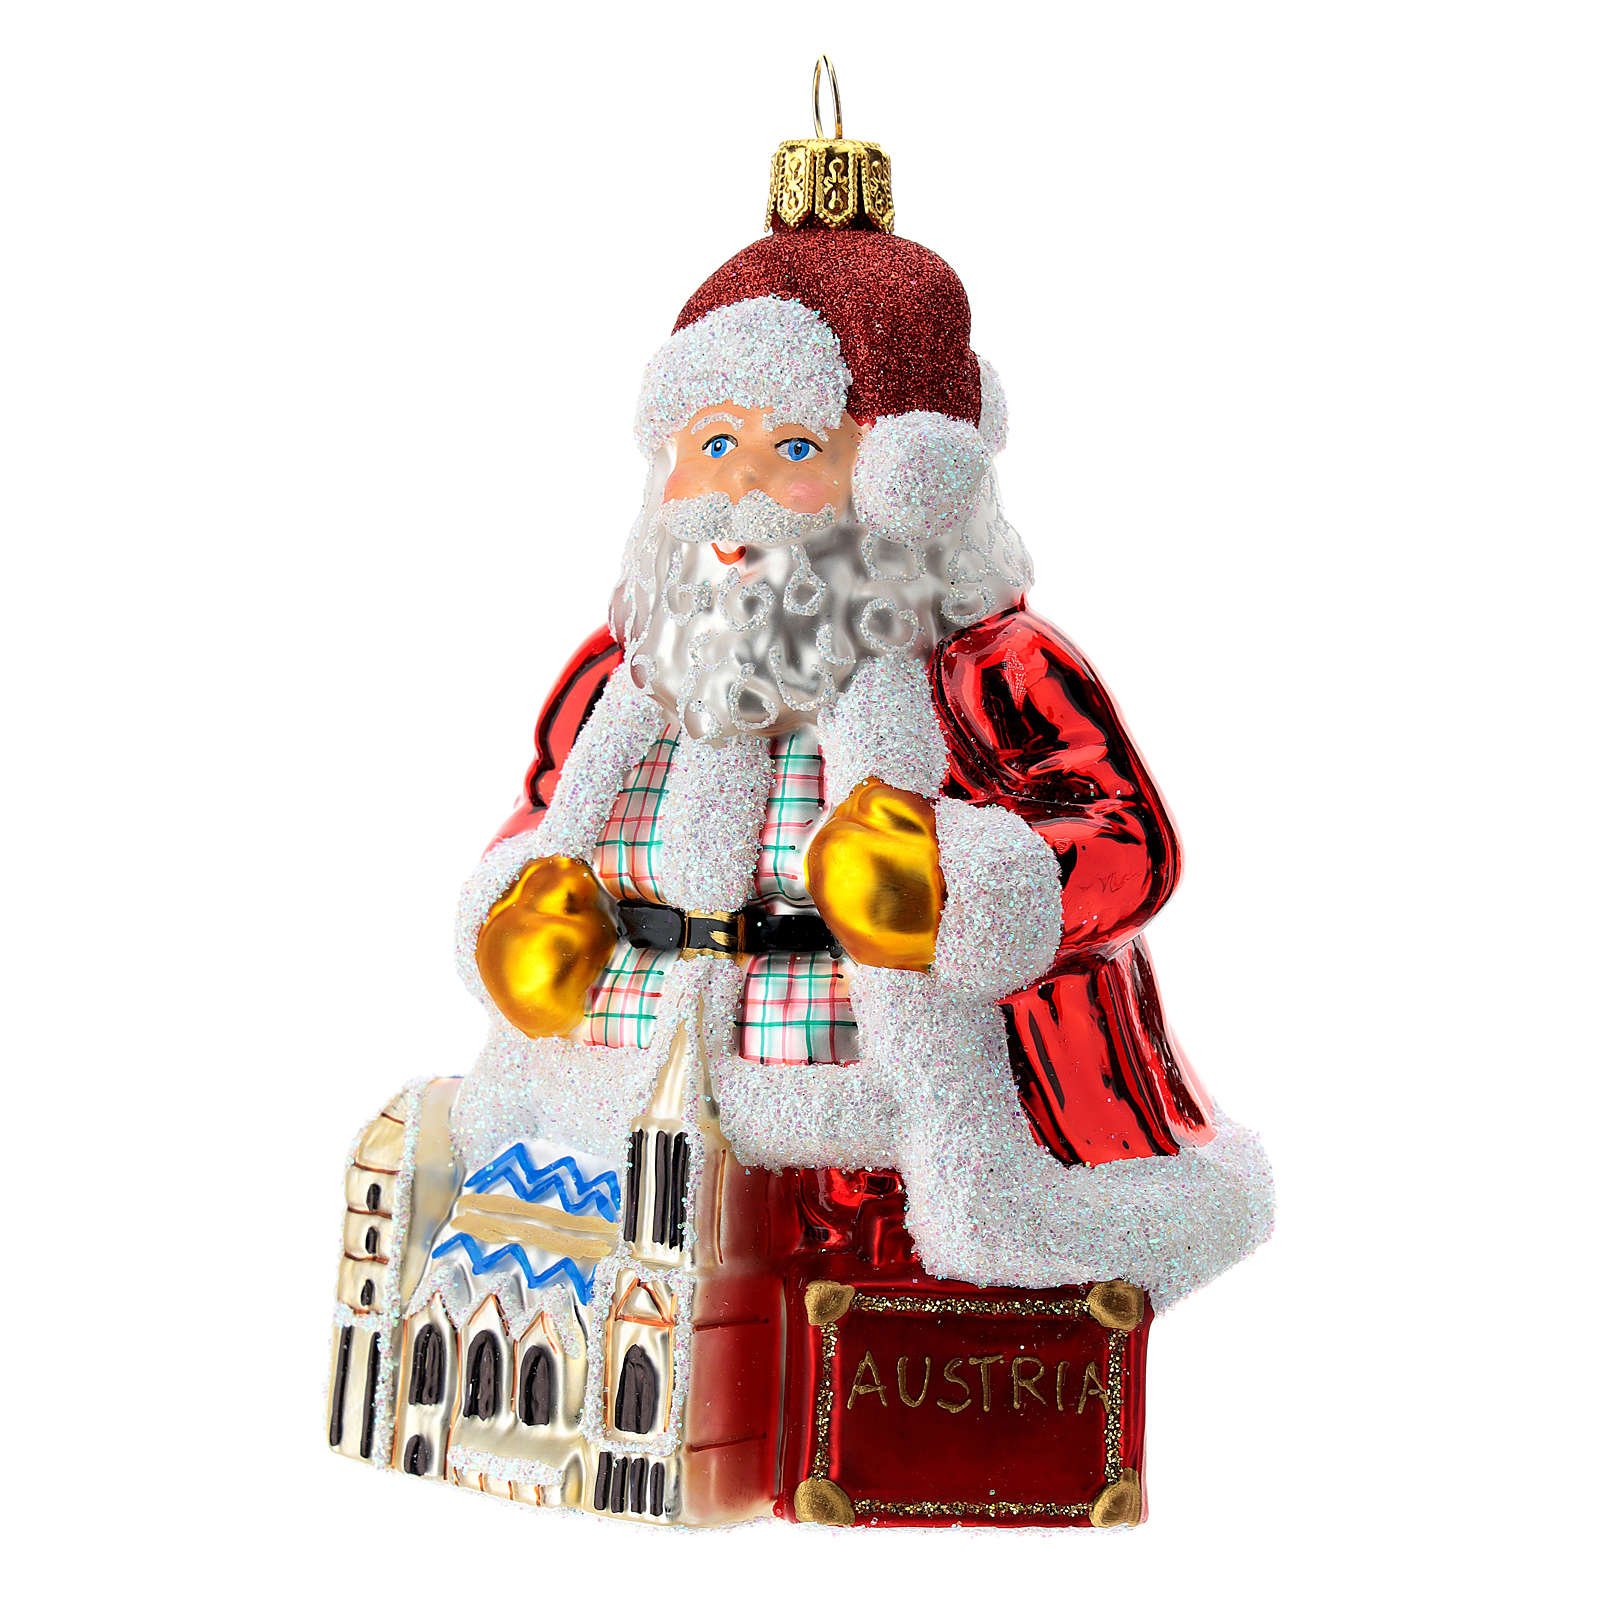 Blown glass Christmas ornament, Santa Claus in Austria 4